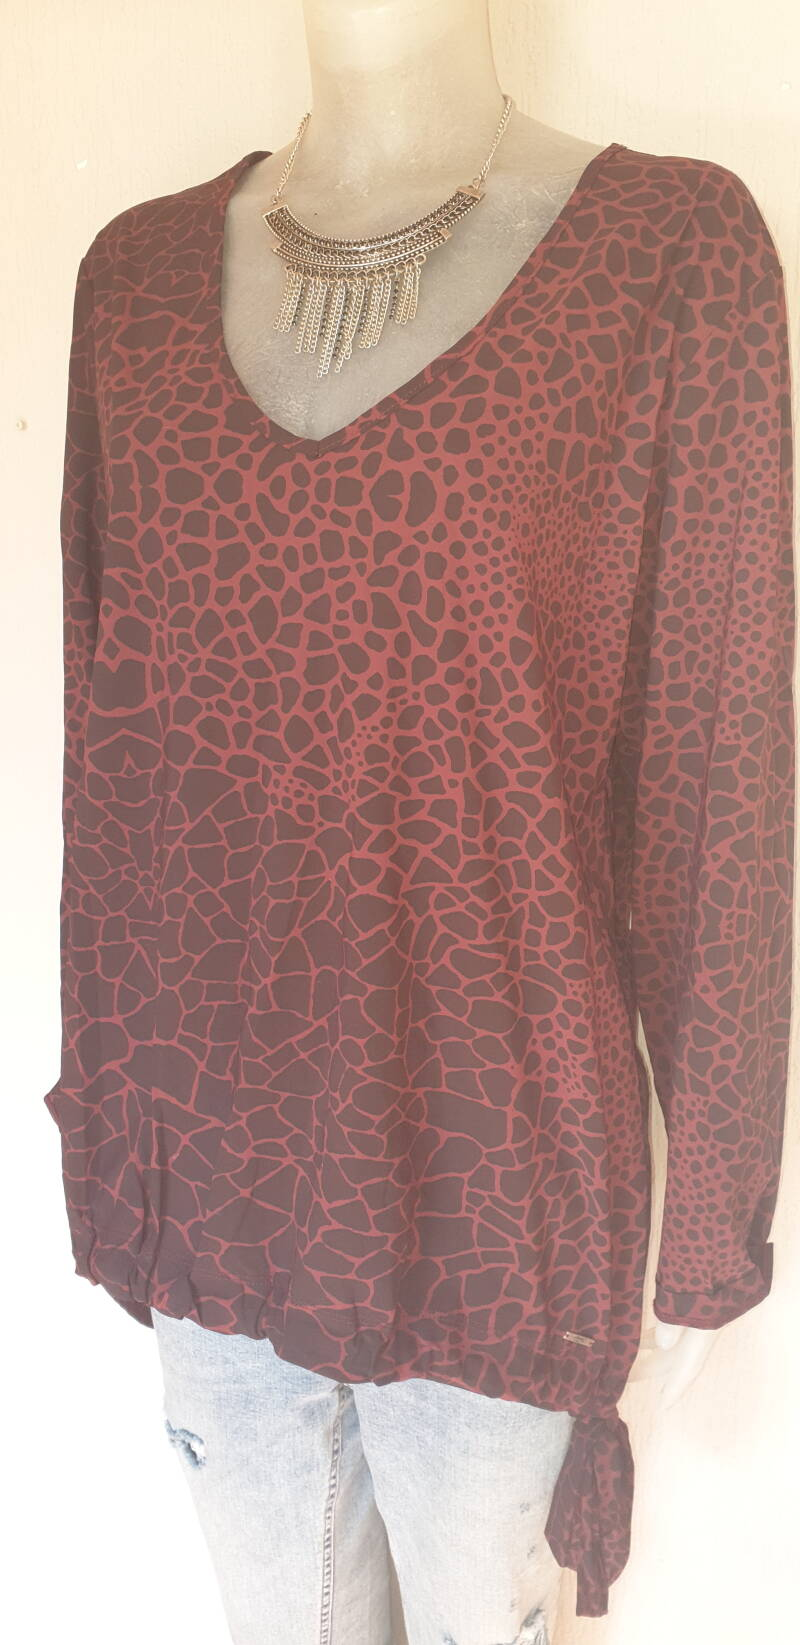 Bordeaux rood top - xl (42)